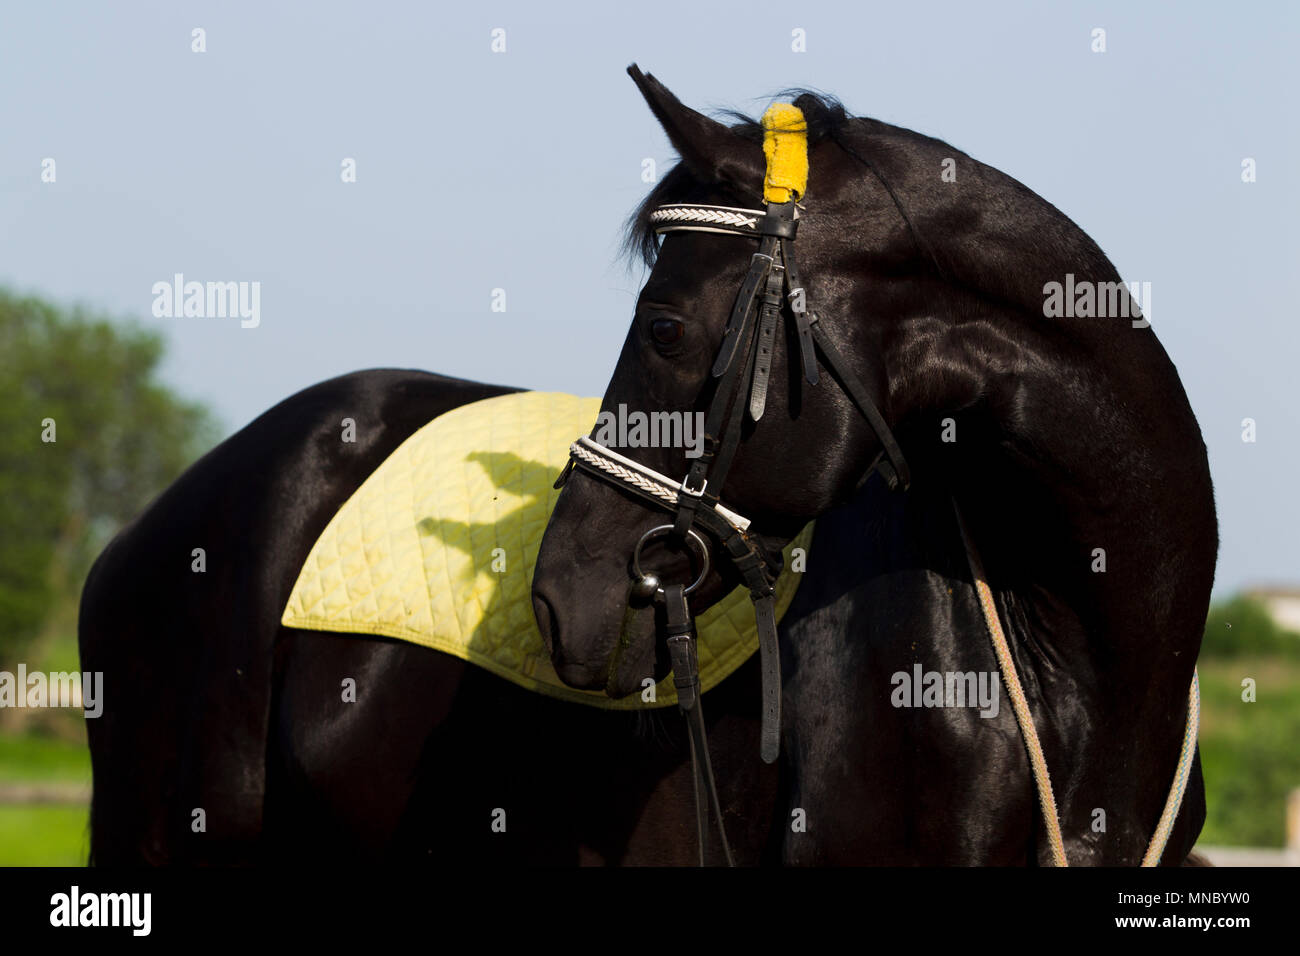 Black Horse With Yellow Saddle Blanket And Bridle Gazing Back Sunny Summer Day Stock Photo Alamy